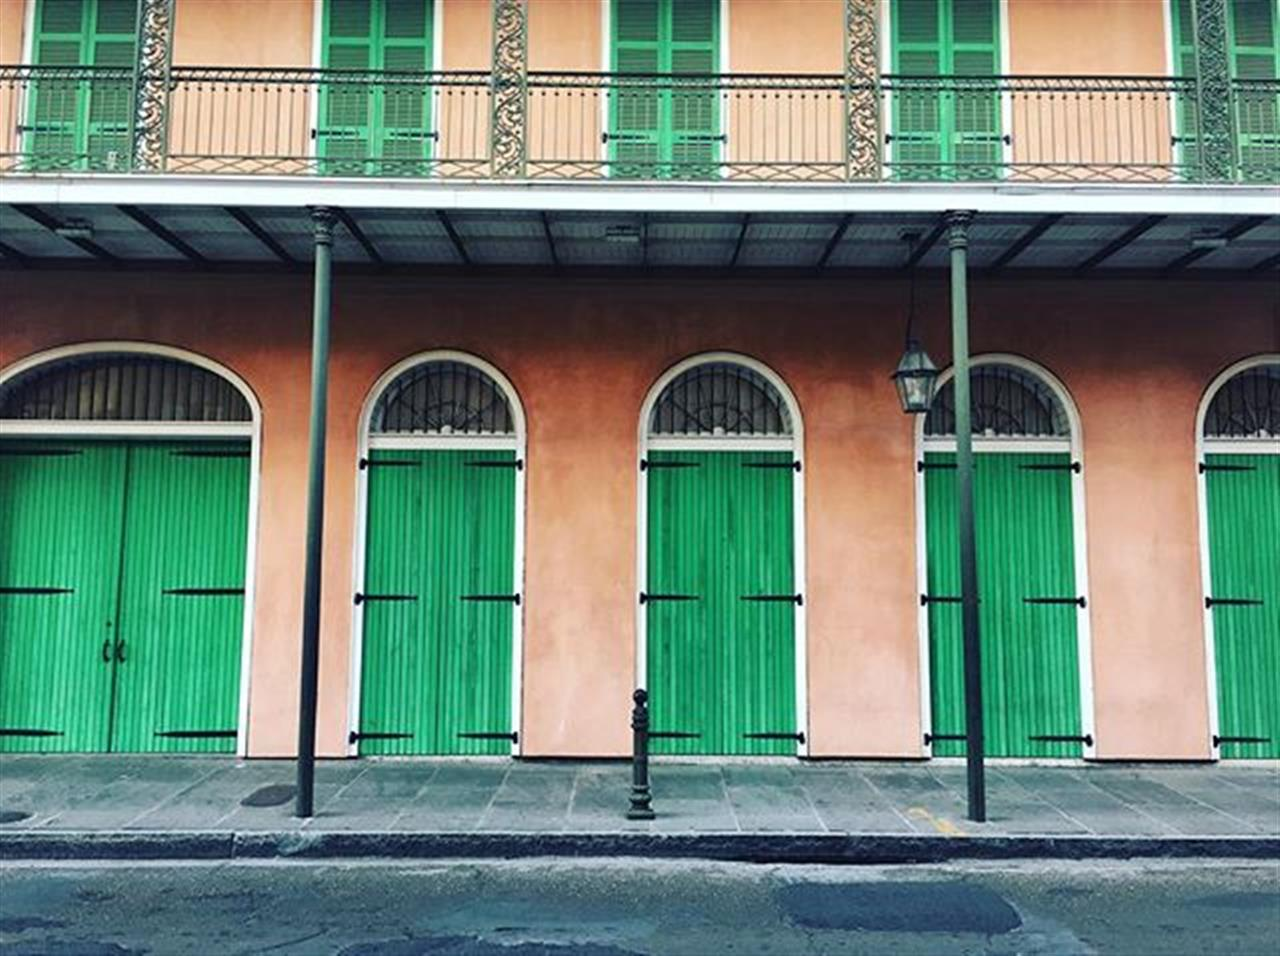 We love the peace of the @frenchquarternola on a Sunday morning.